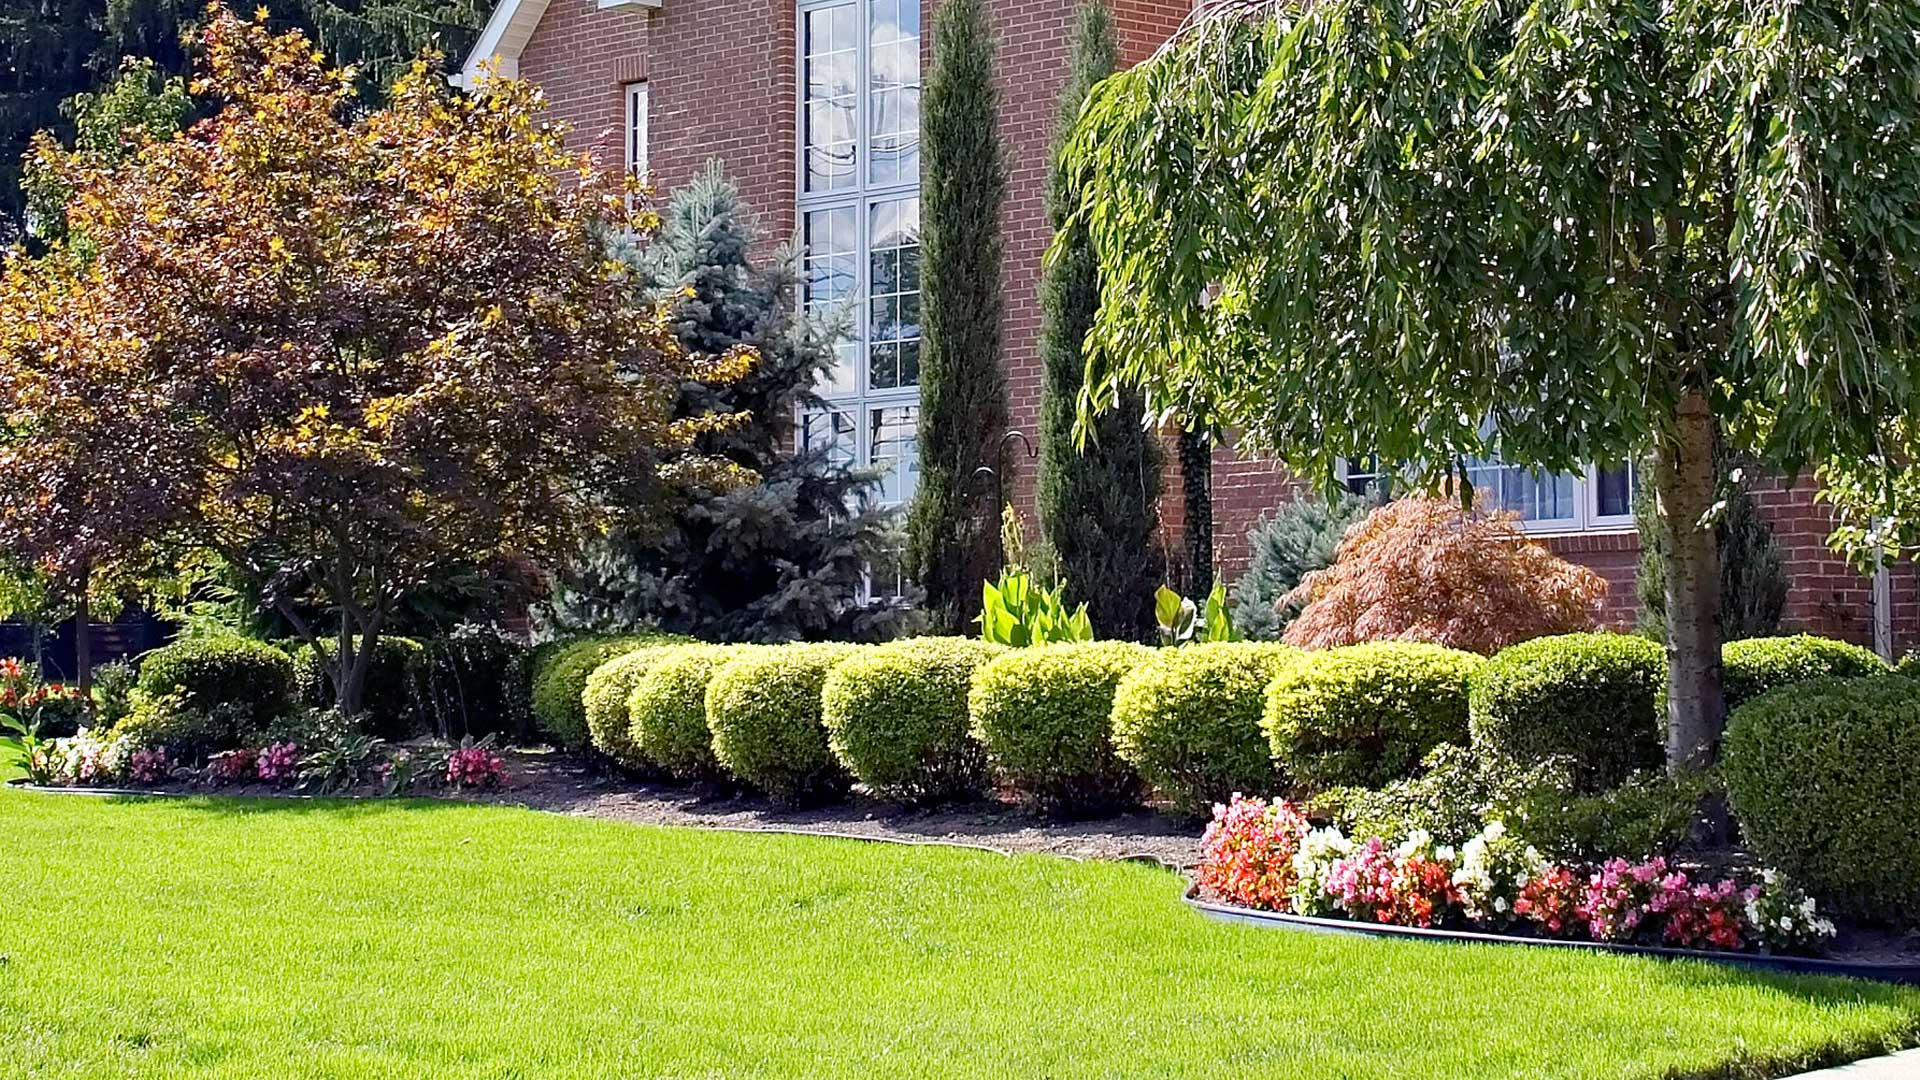 Landscaping with healthy plants that are properly cared for in Chatham, NJ.